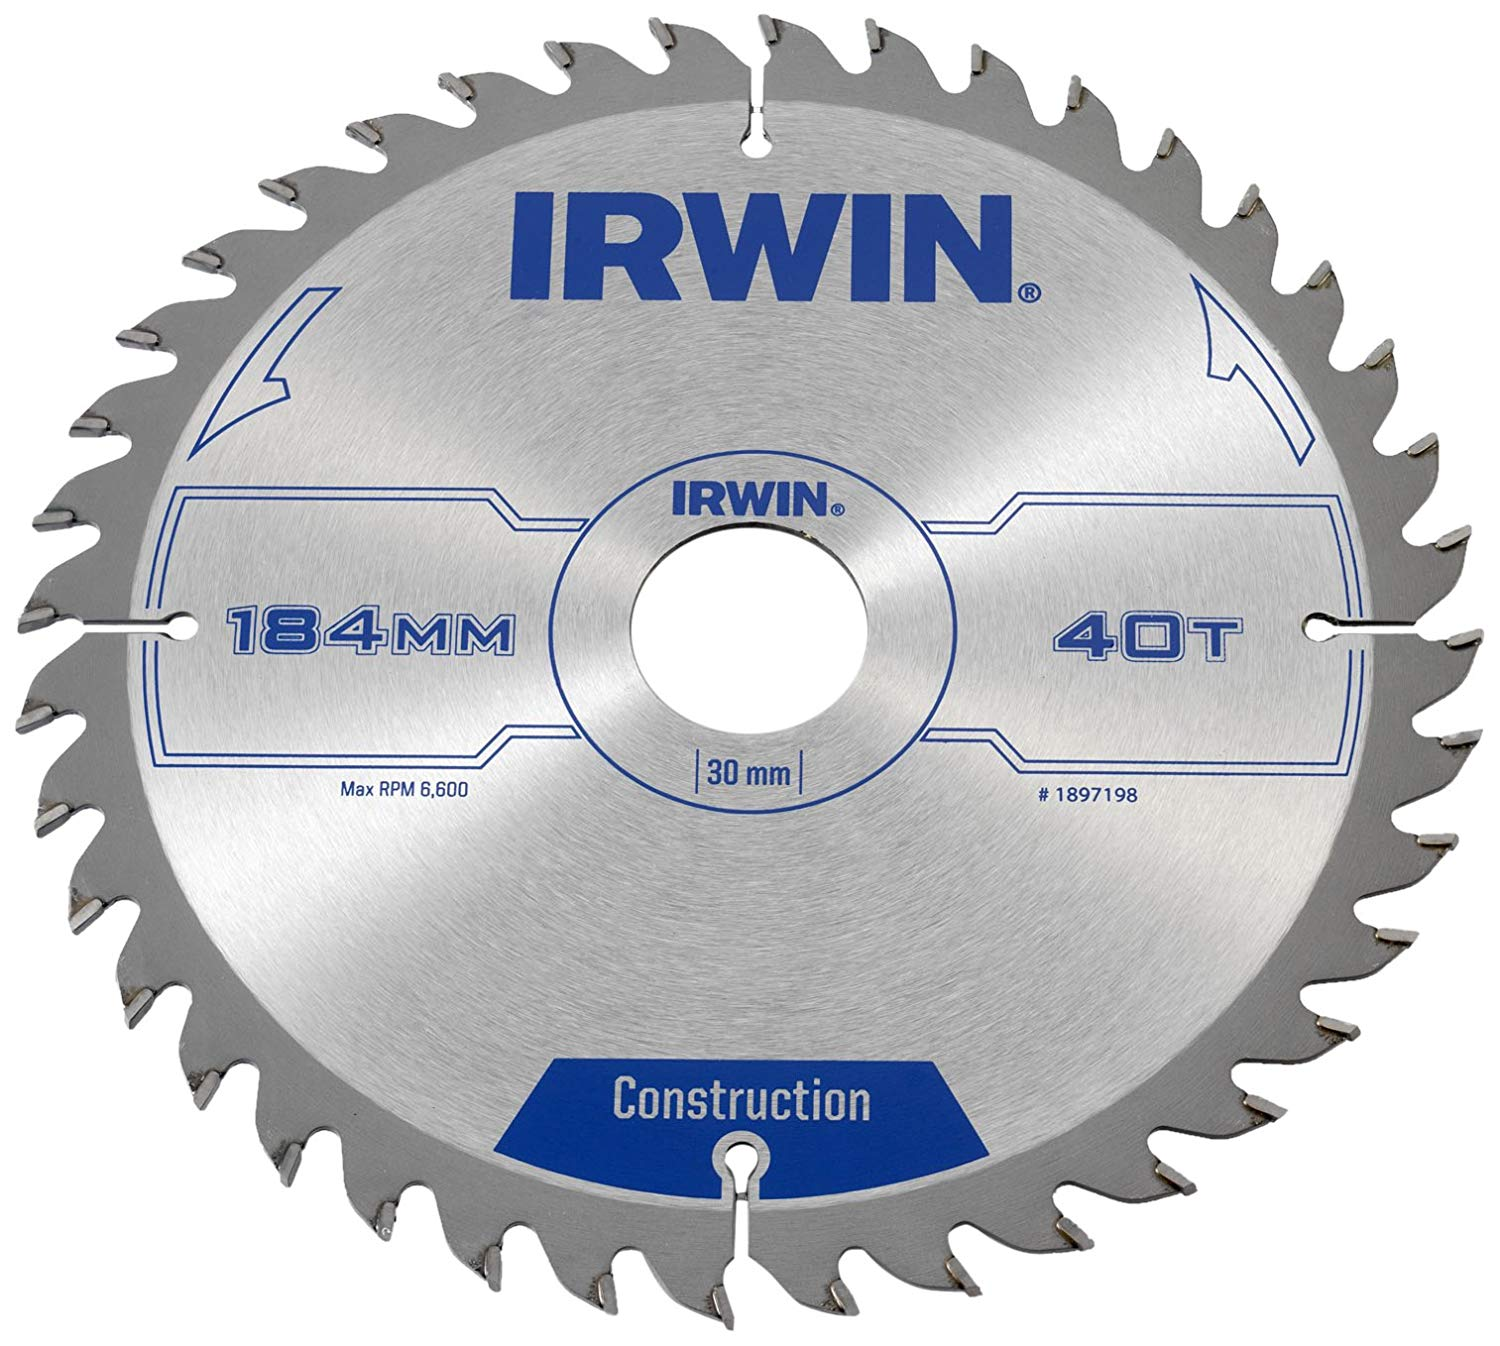 IRWIN 1897198 - Professional Wood Circular Saw Blades 7in / 184 x 40T x 30 mm